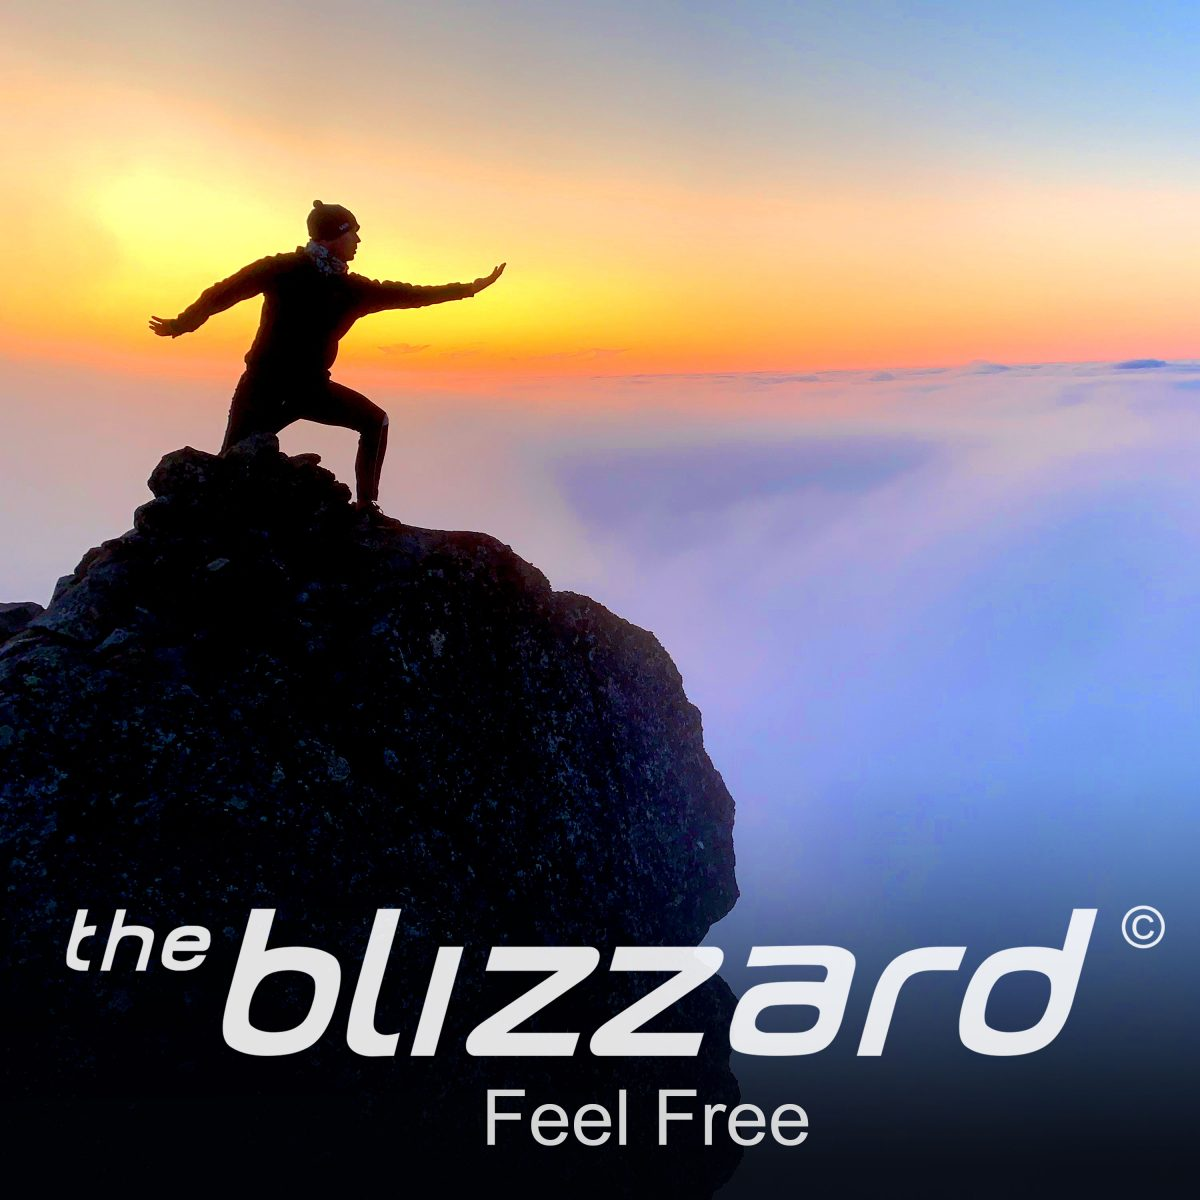 Feel Free - The Blizzard - on Patreon